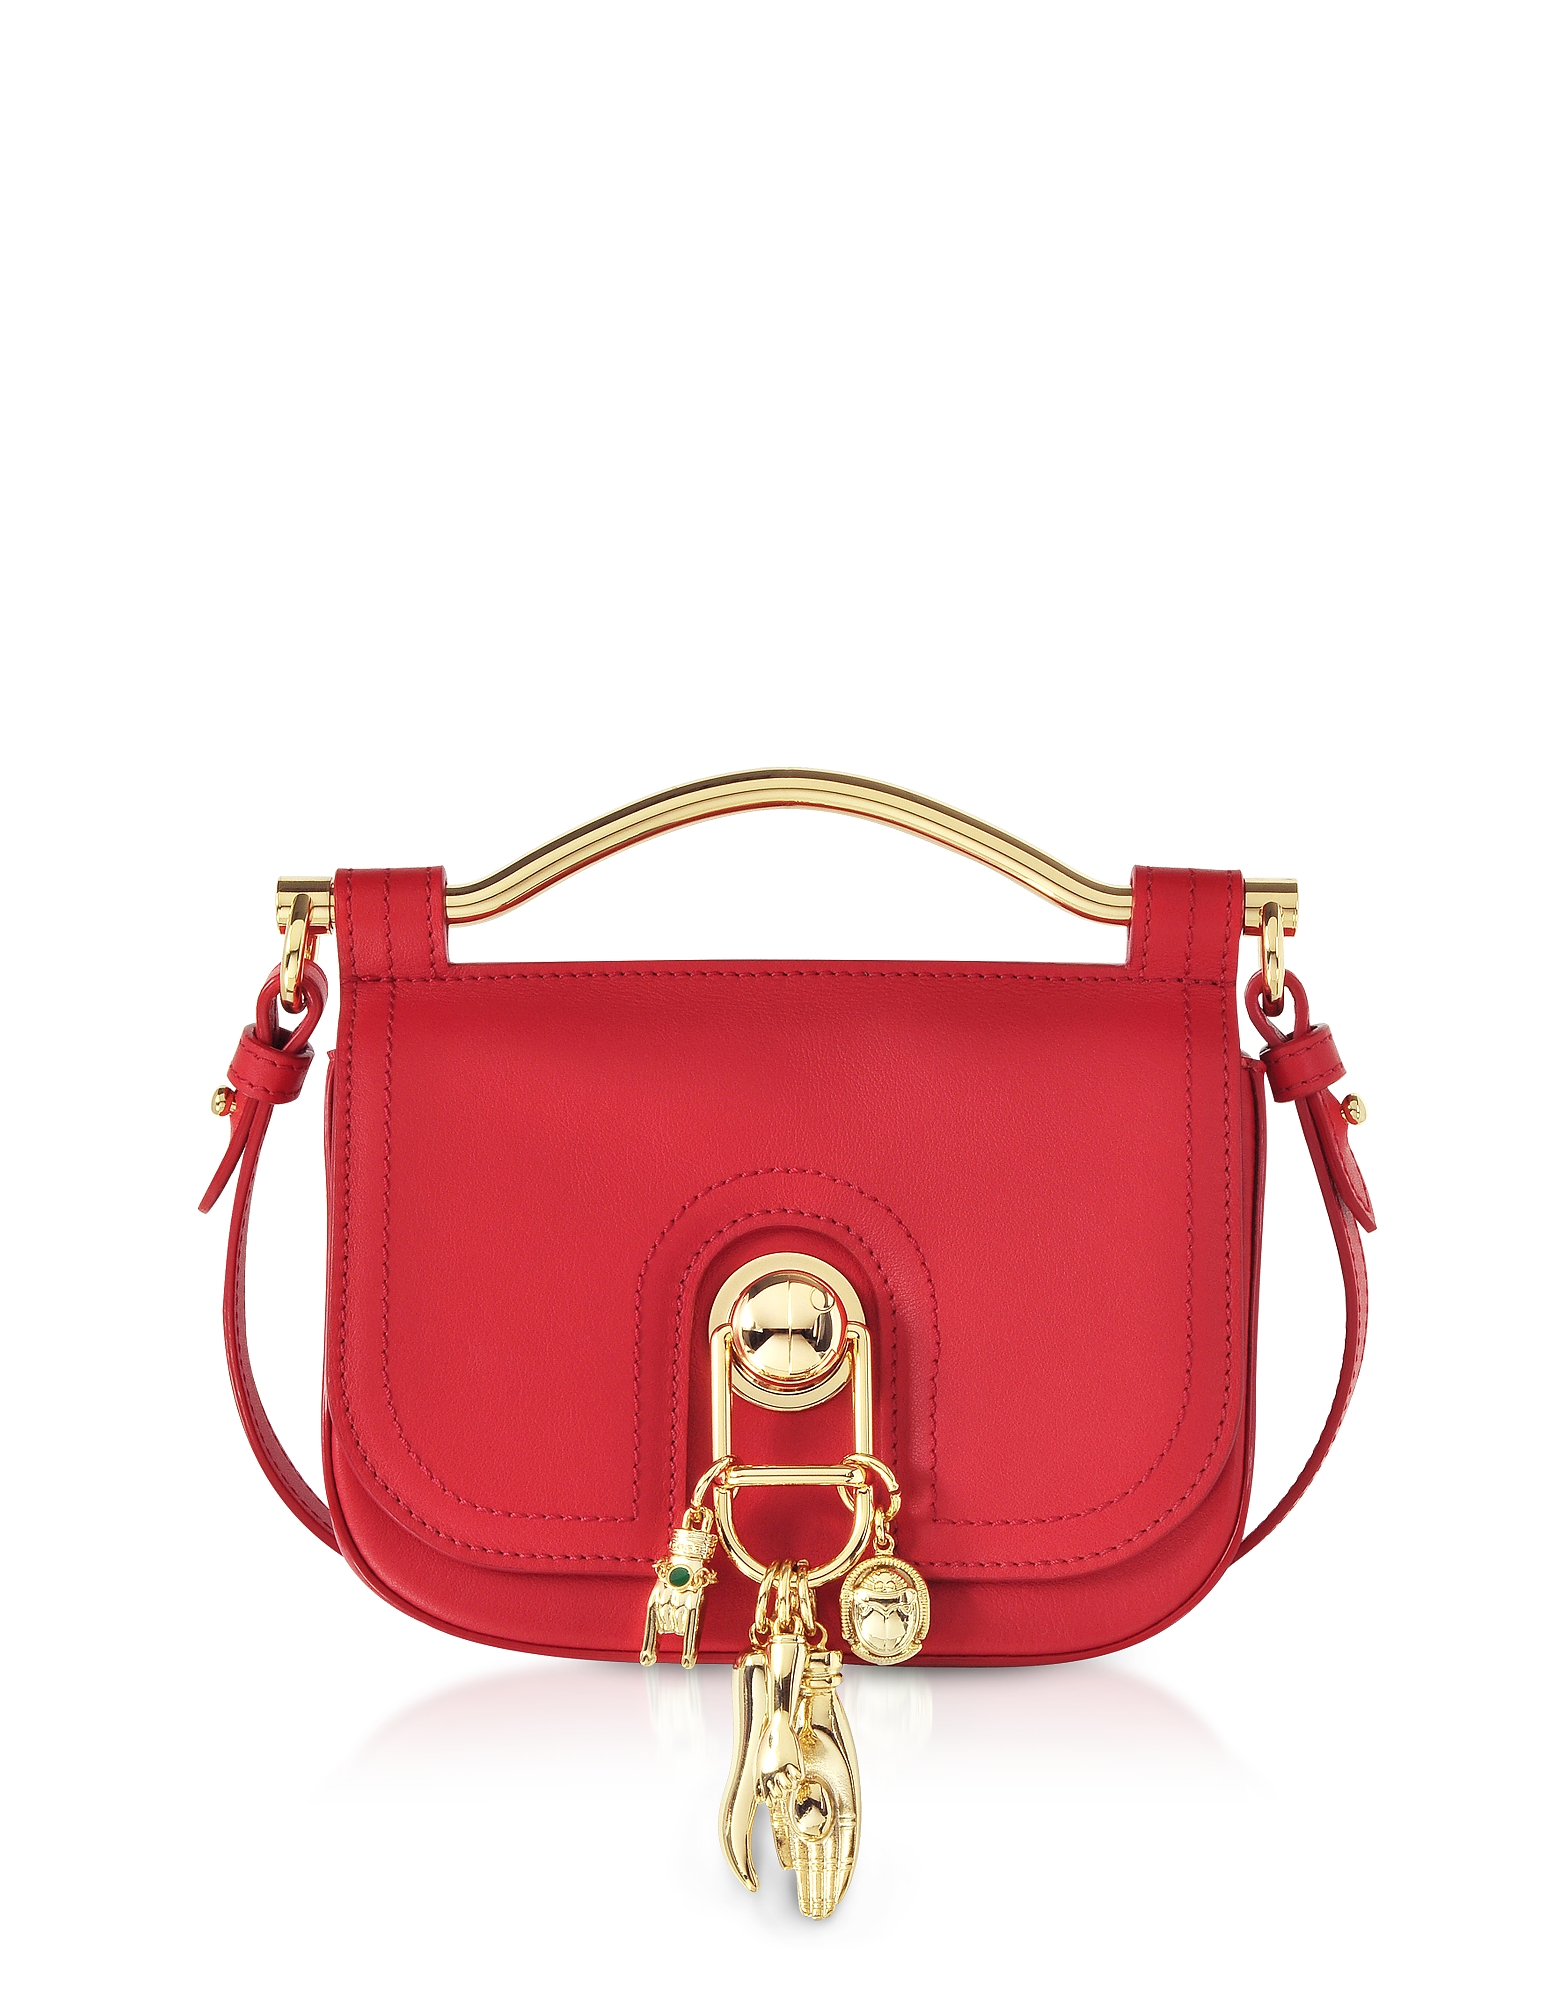 Carven Handbags, Pepper Red Leather Misti Crossbody Bag